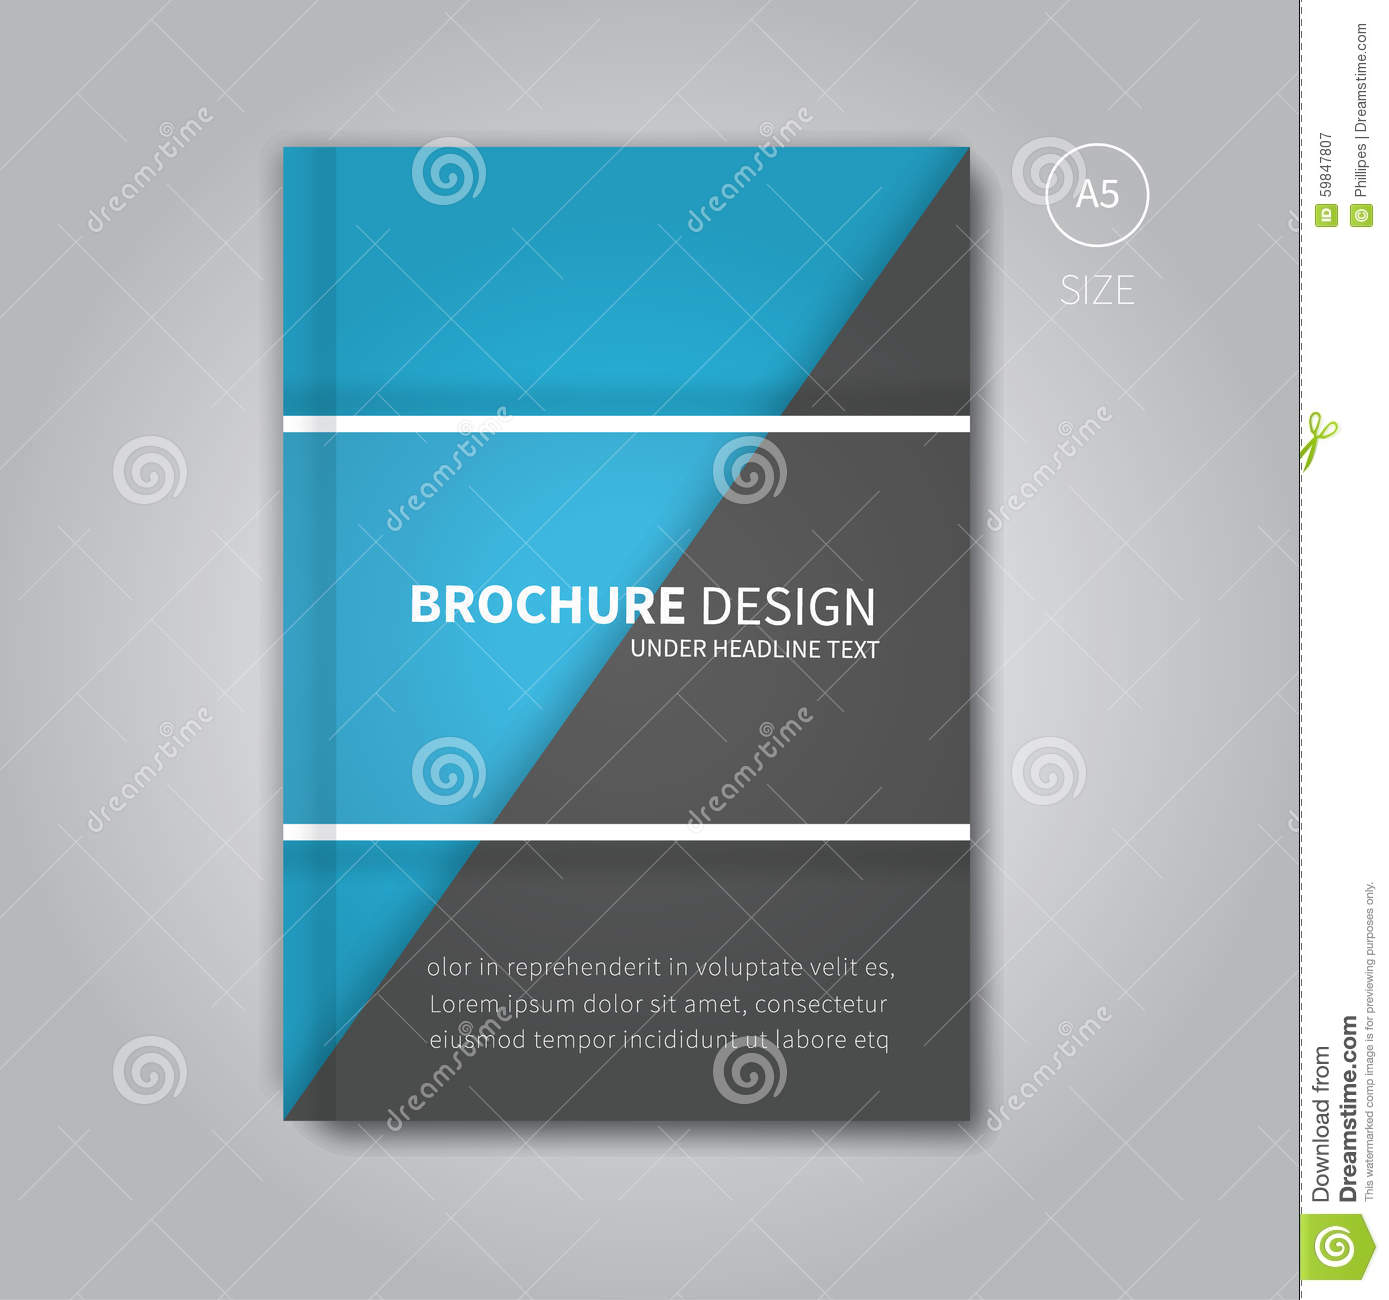 Book Cover Design Vector Download : Cover book digital design tablet concept template vector